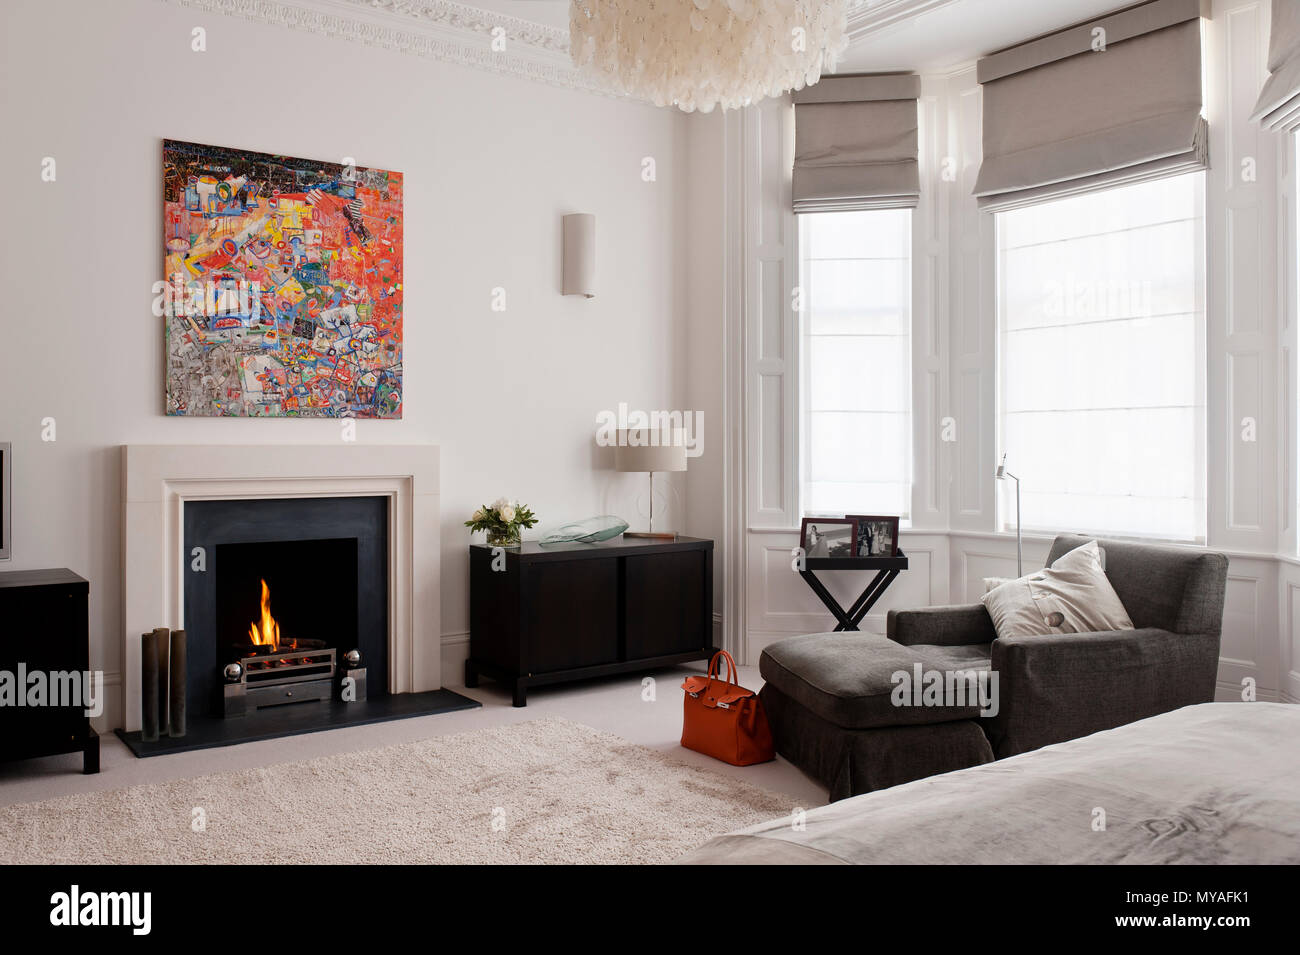 Armchair and fireplace in contemporary bedroom - Stock Image